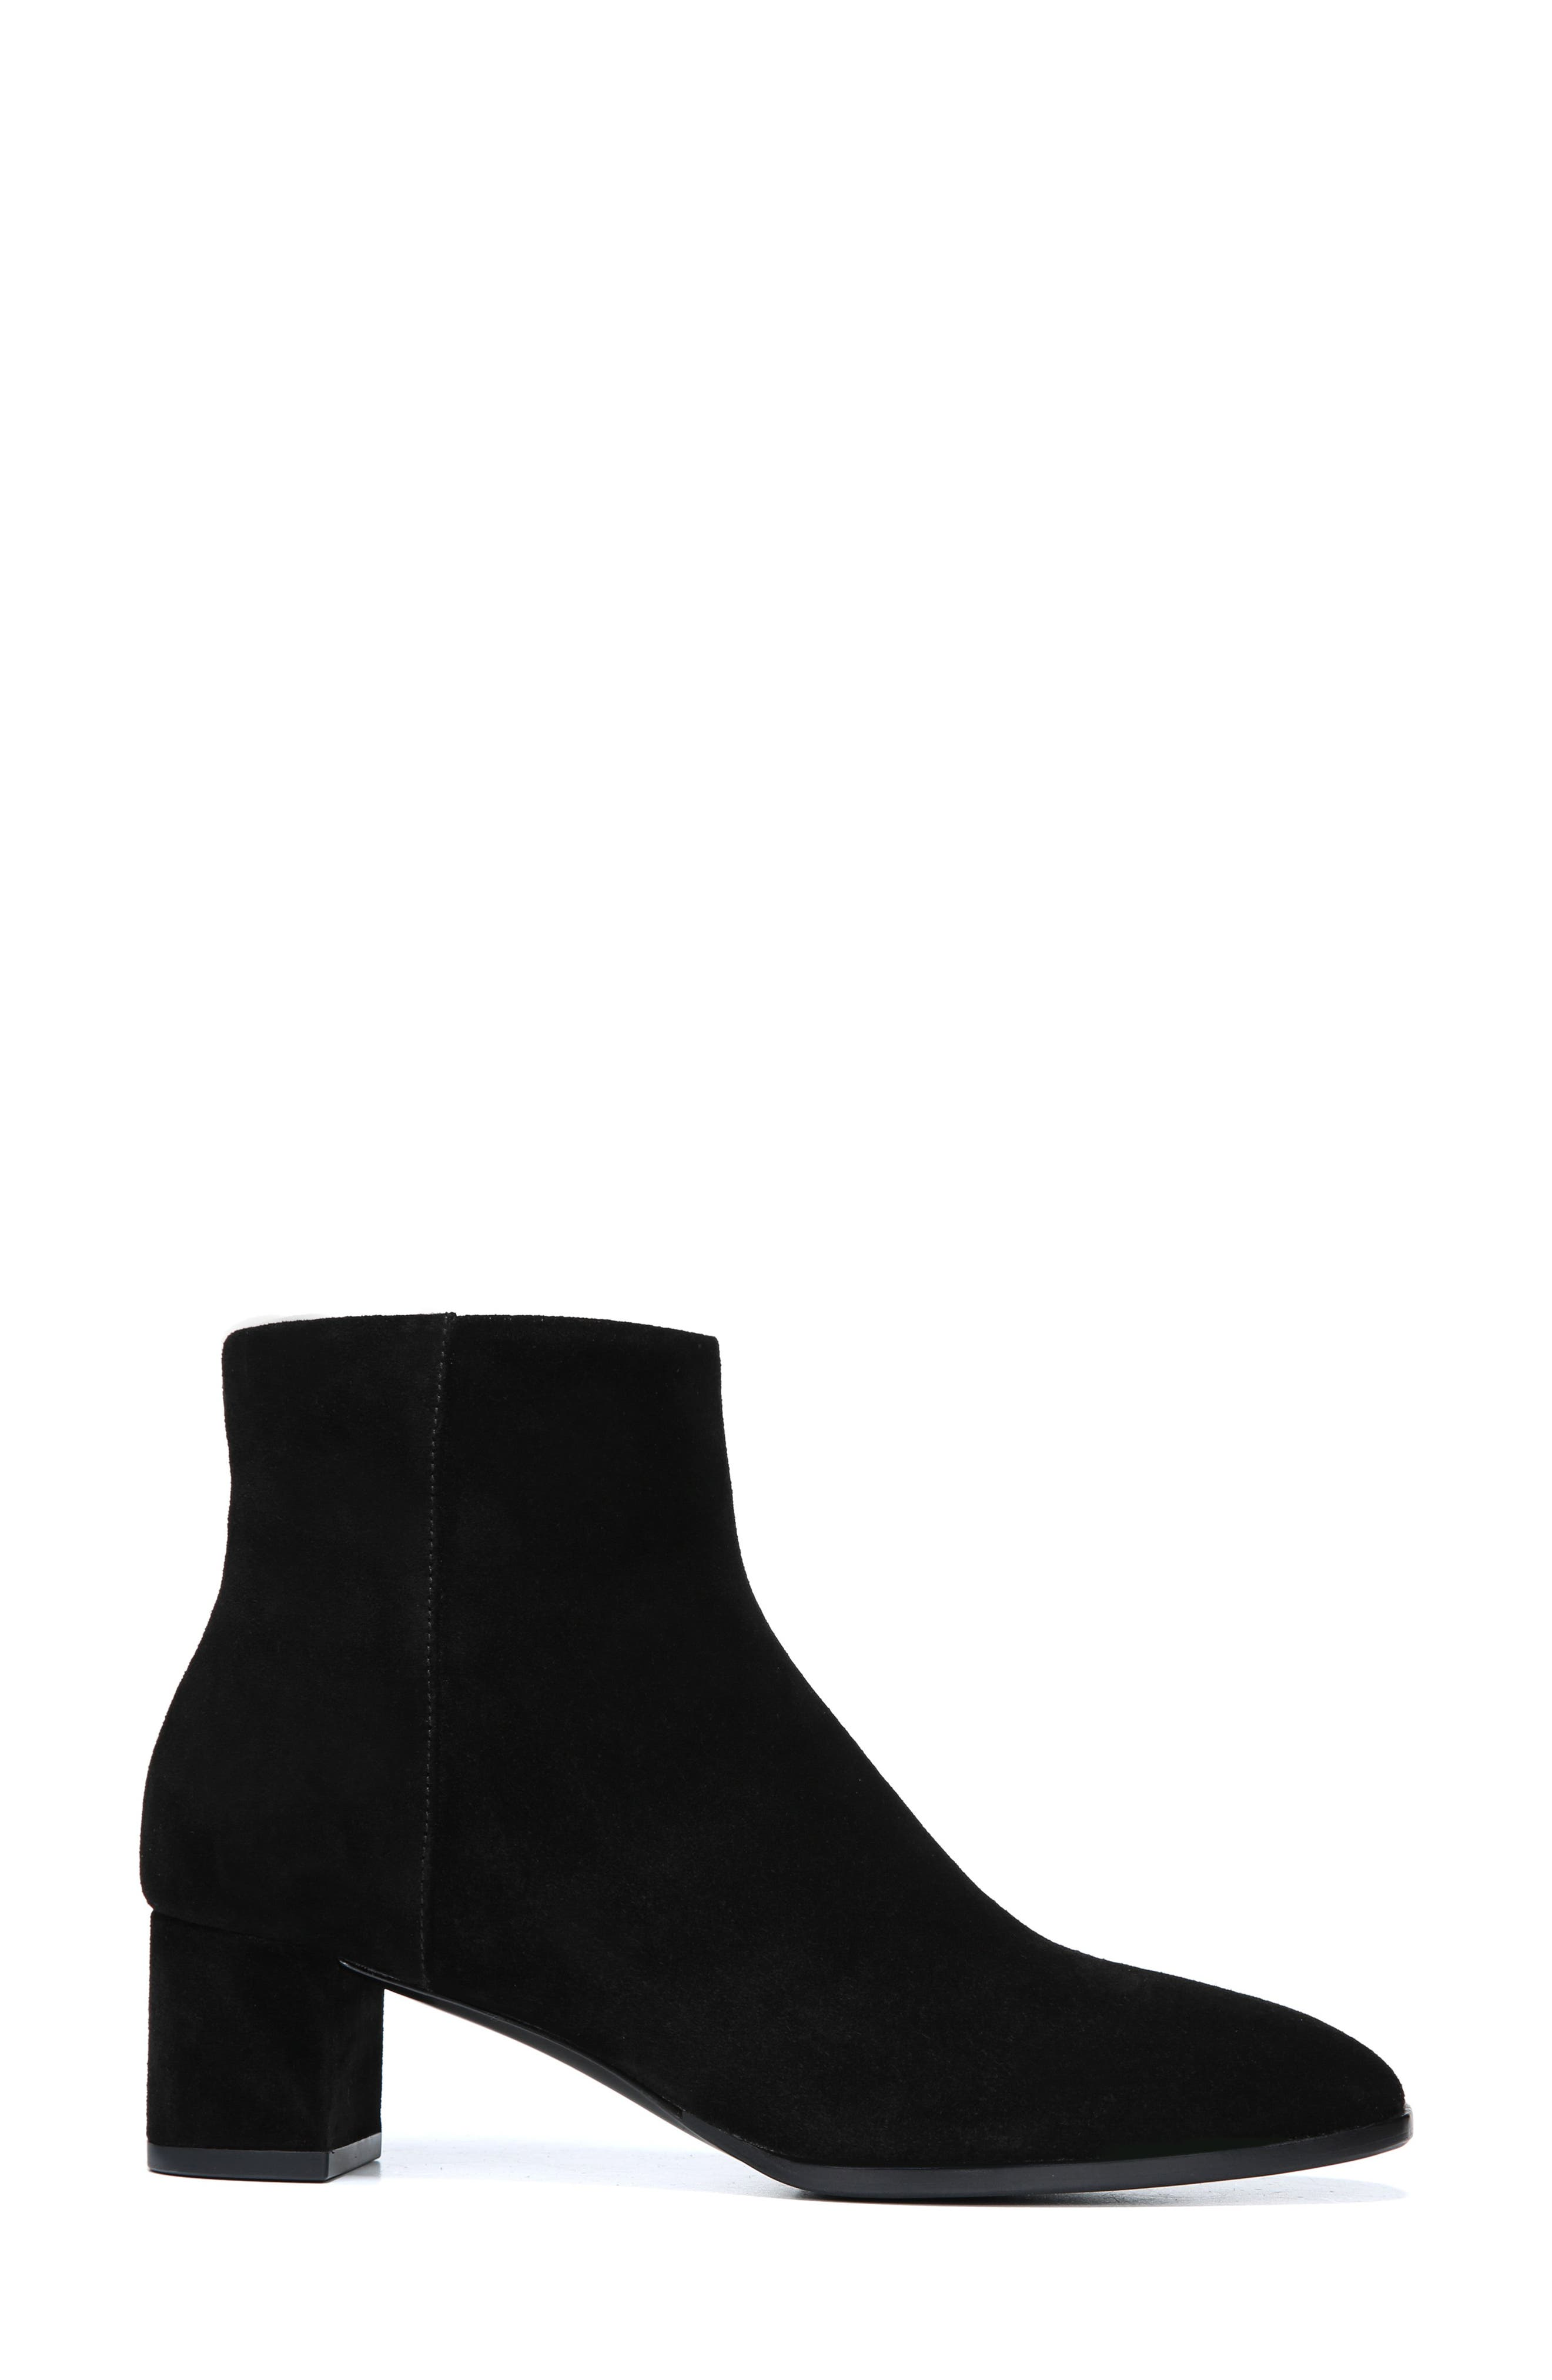 Vail Bootie,                             Alternate thumbnail 3, color,                             BLACK SUEDE